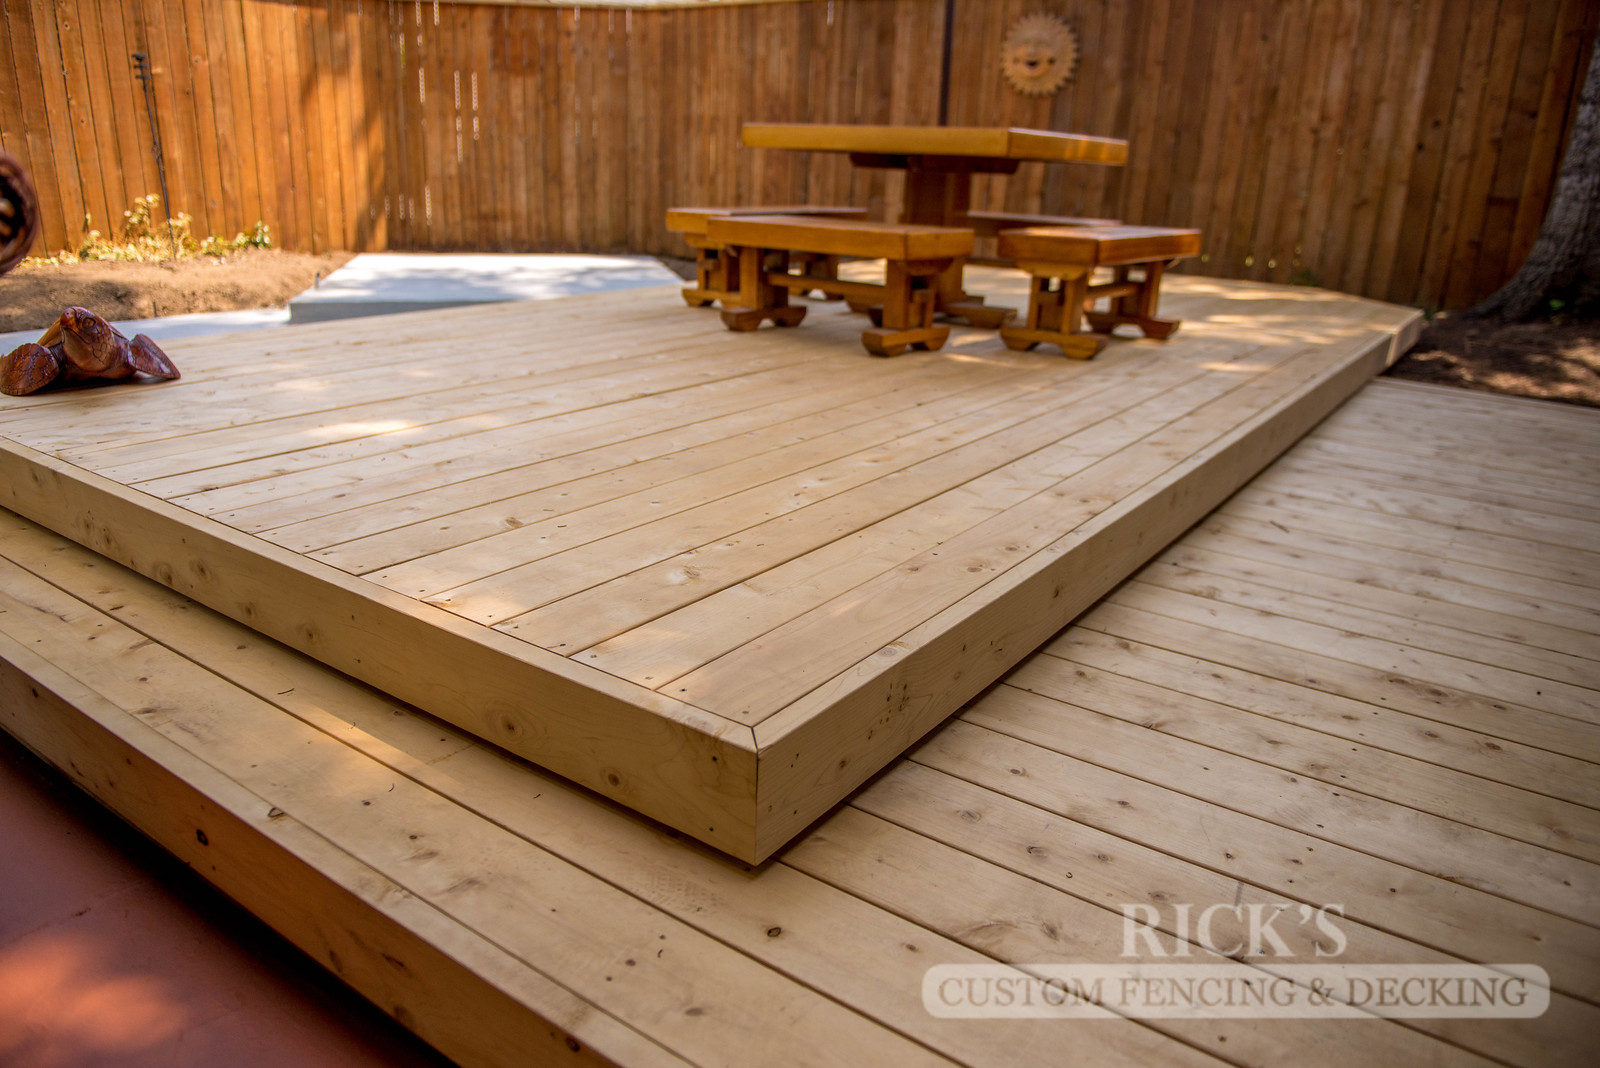 1023 - Port Orford Cedar Decking